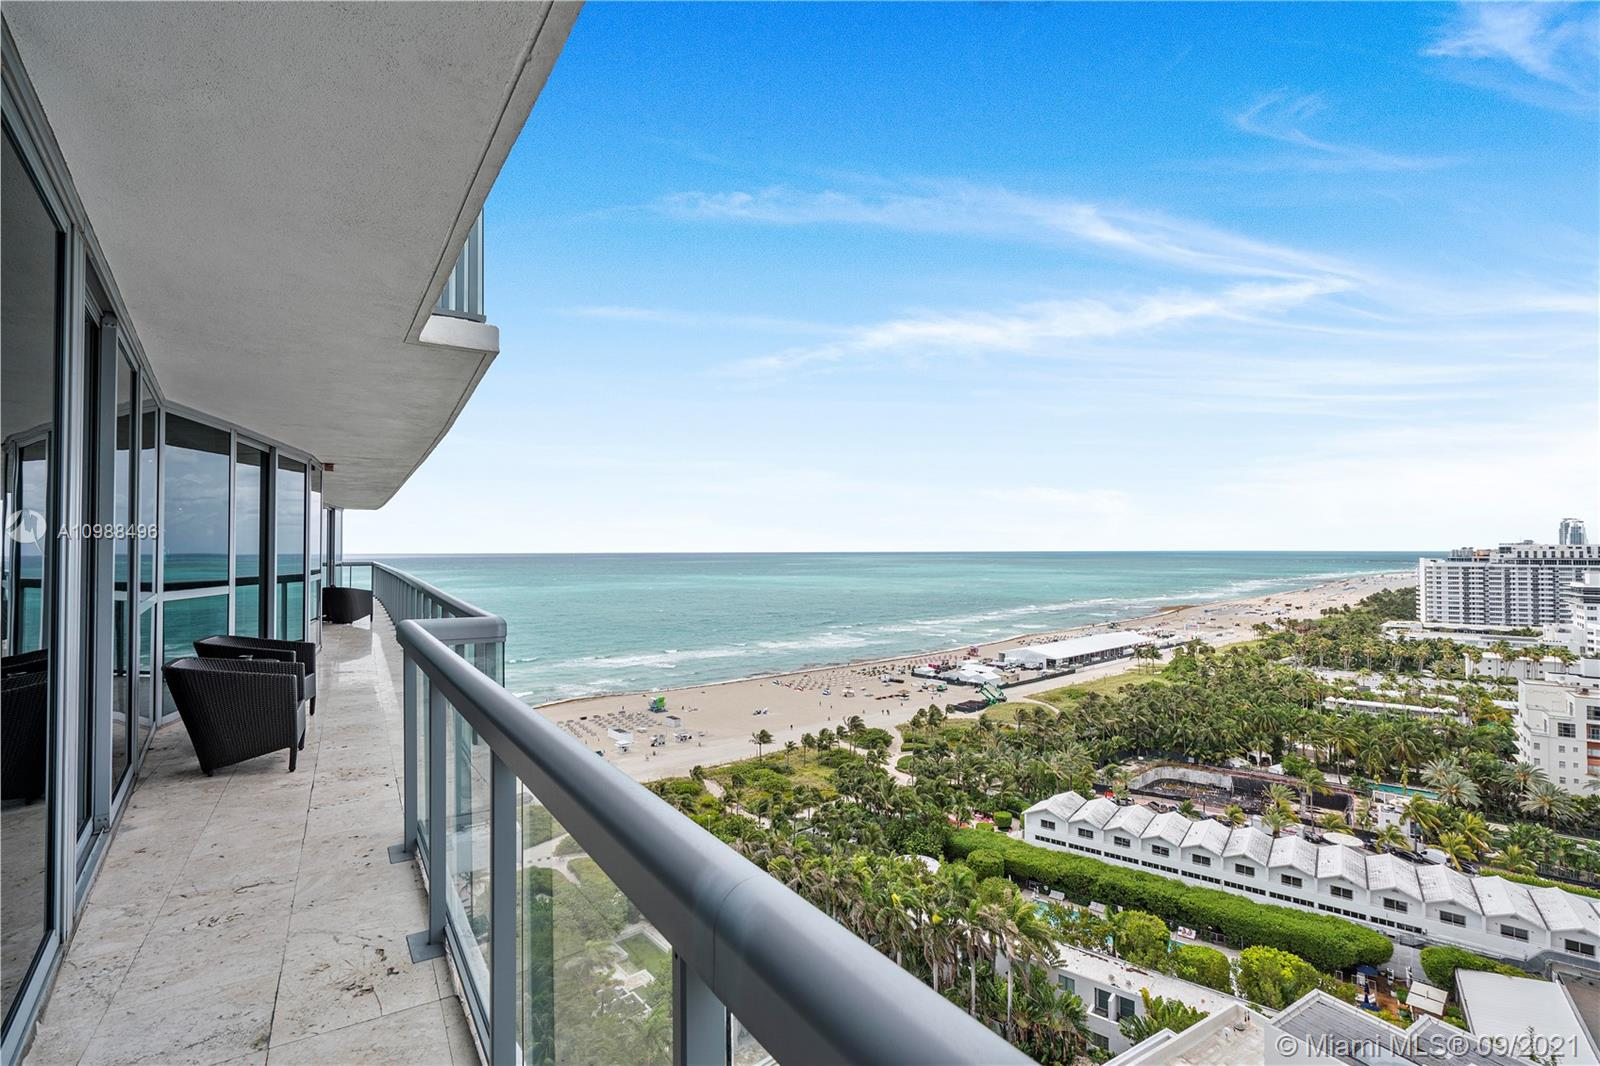 Your picture-perfect home awaits with this glorious condo set against a beautiful ocean backdrop. The Setai residential tower is adjacent to one of the most pristine hotels in all of Miami Beach, The Setai. This condo, has only the most sophisticated finishes and features that there are to ensure a home that is grand in scale yet subtle in its opulence. The spacious floor plan stretches over multiple rooms for every mood and occasion whether you are gathering in the living room or taking in the breathtaking views over the ocean and city. This unique open kitchen comes complete with its beautiful wood features and sweeping stone countertops paired with a suite of high-end appliances.